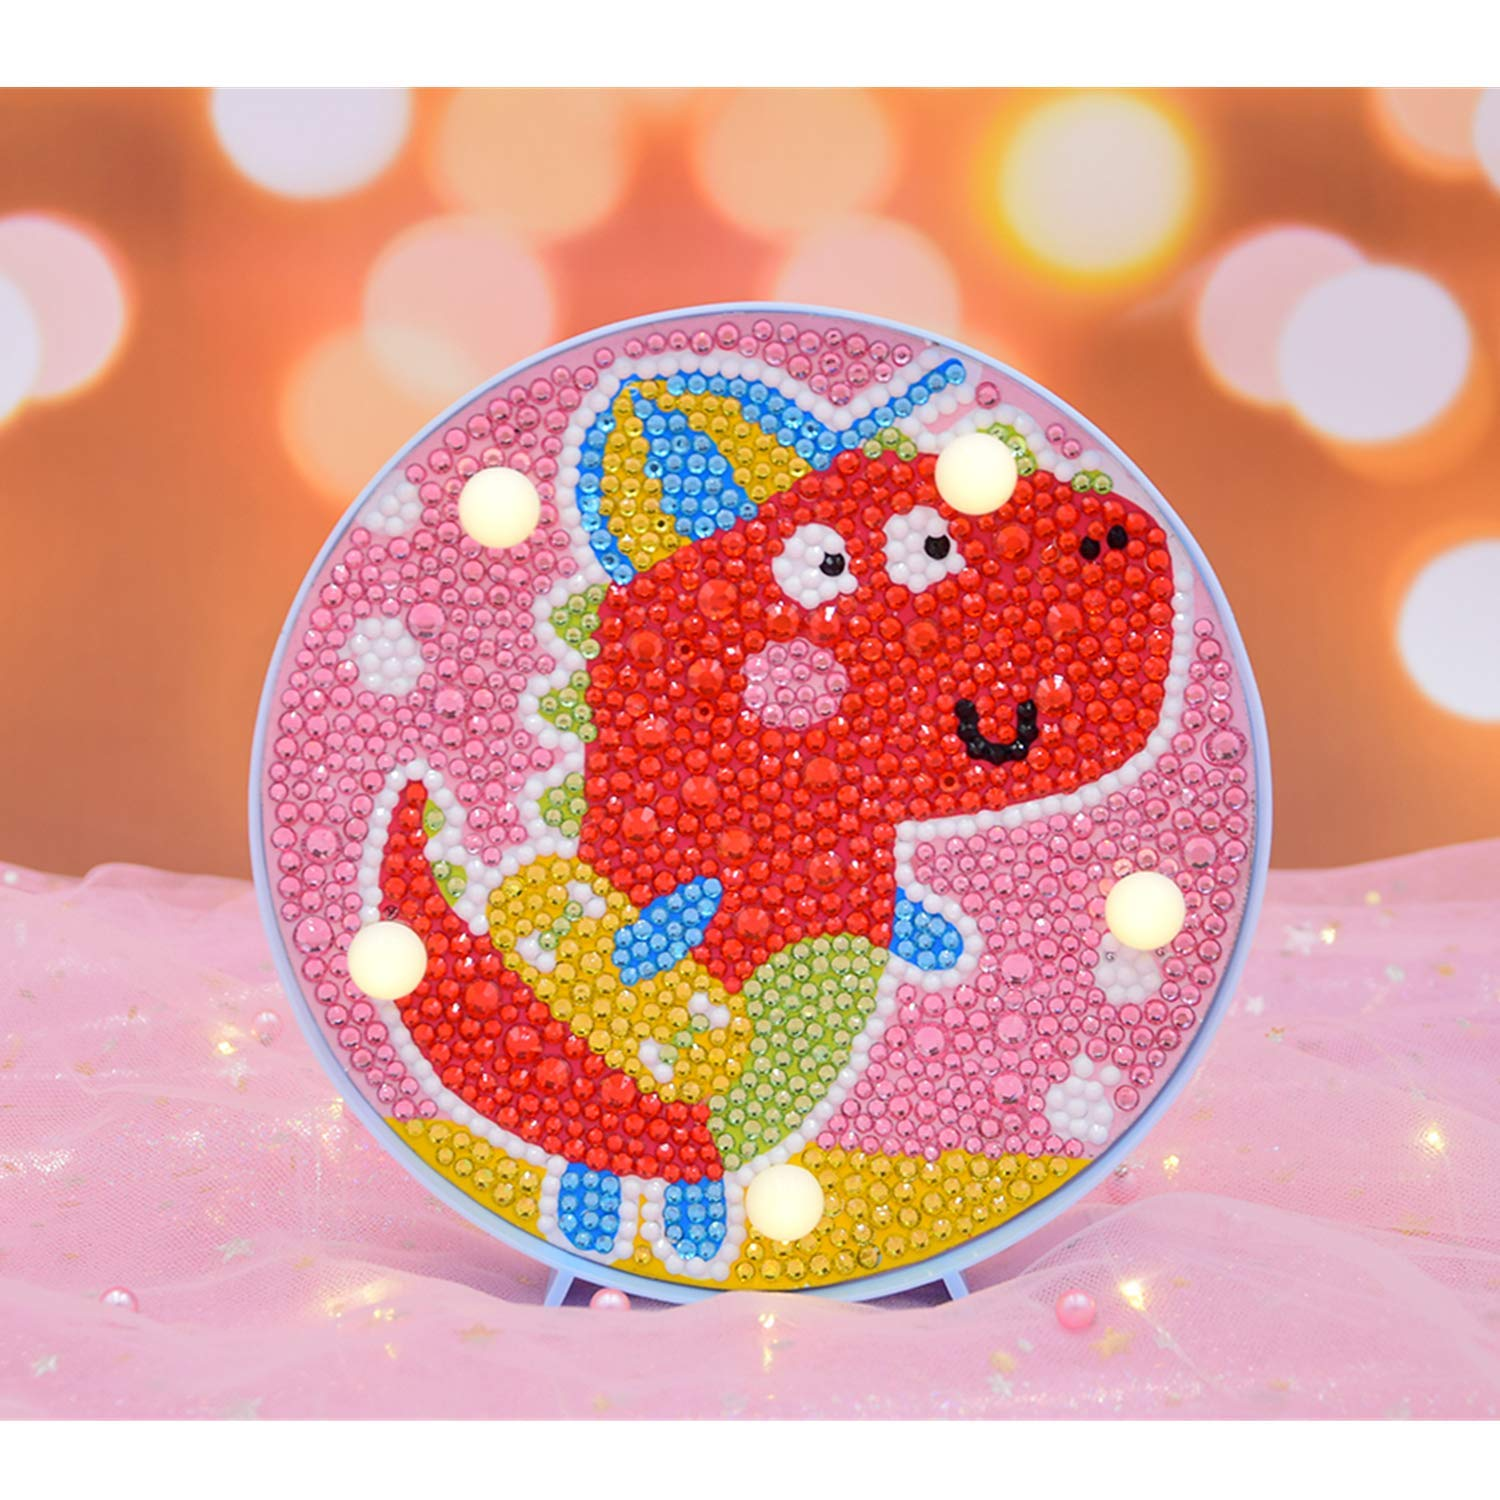 Unicorn B Diamond Painting Unicorn with LED Lights DIY Special Shaped Full Drill Crystal Diamond Drawing Bedside Lamp for Home Decoration or Christmas Gifts-6x6inch